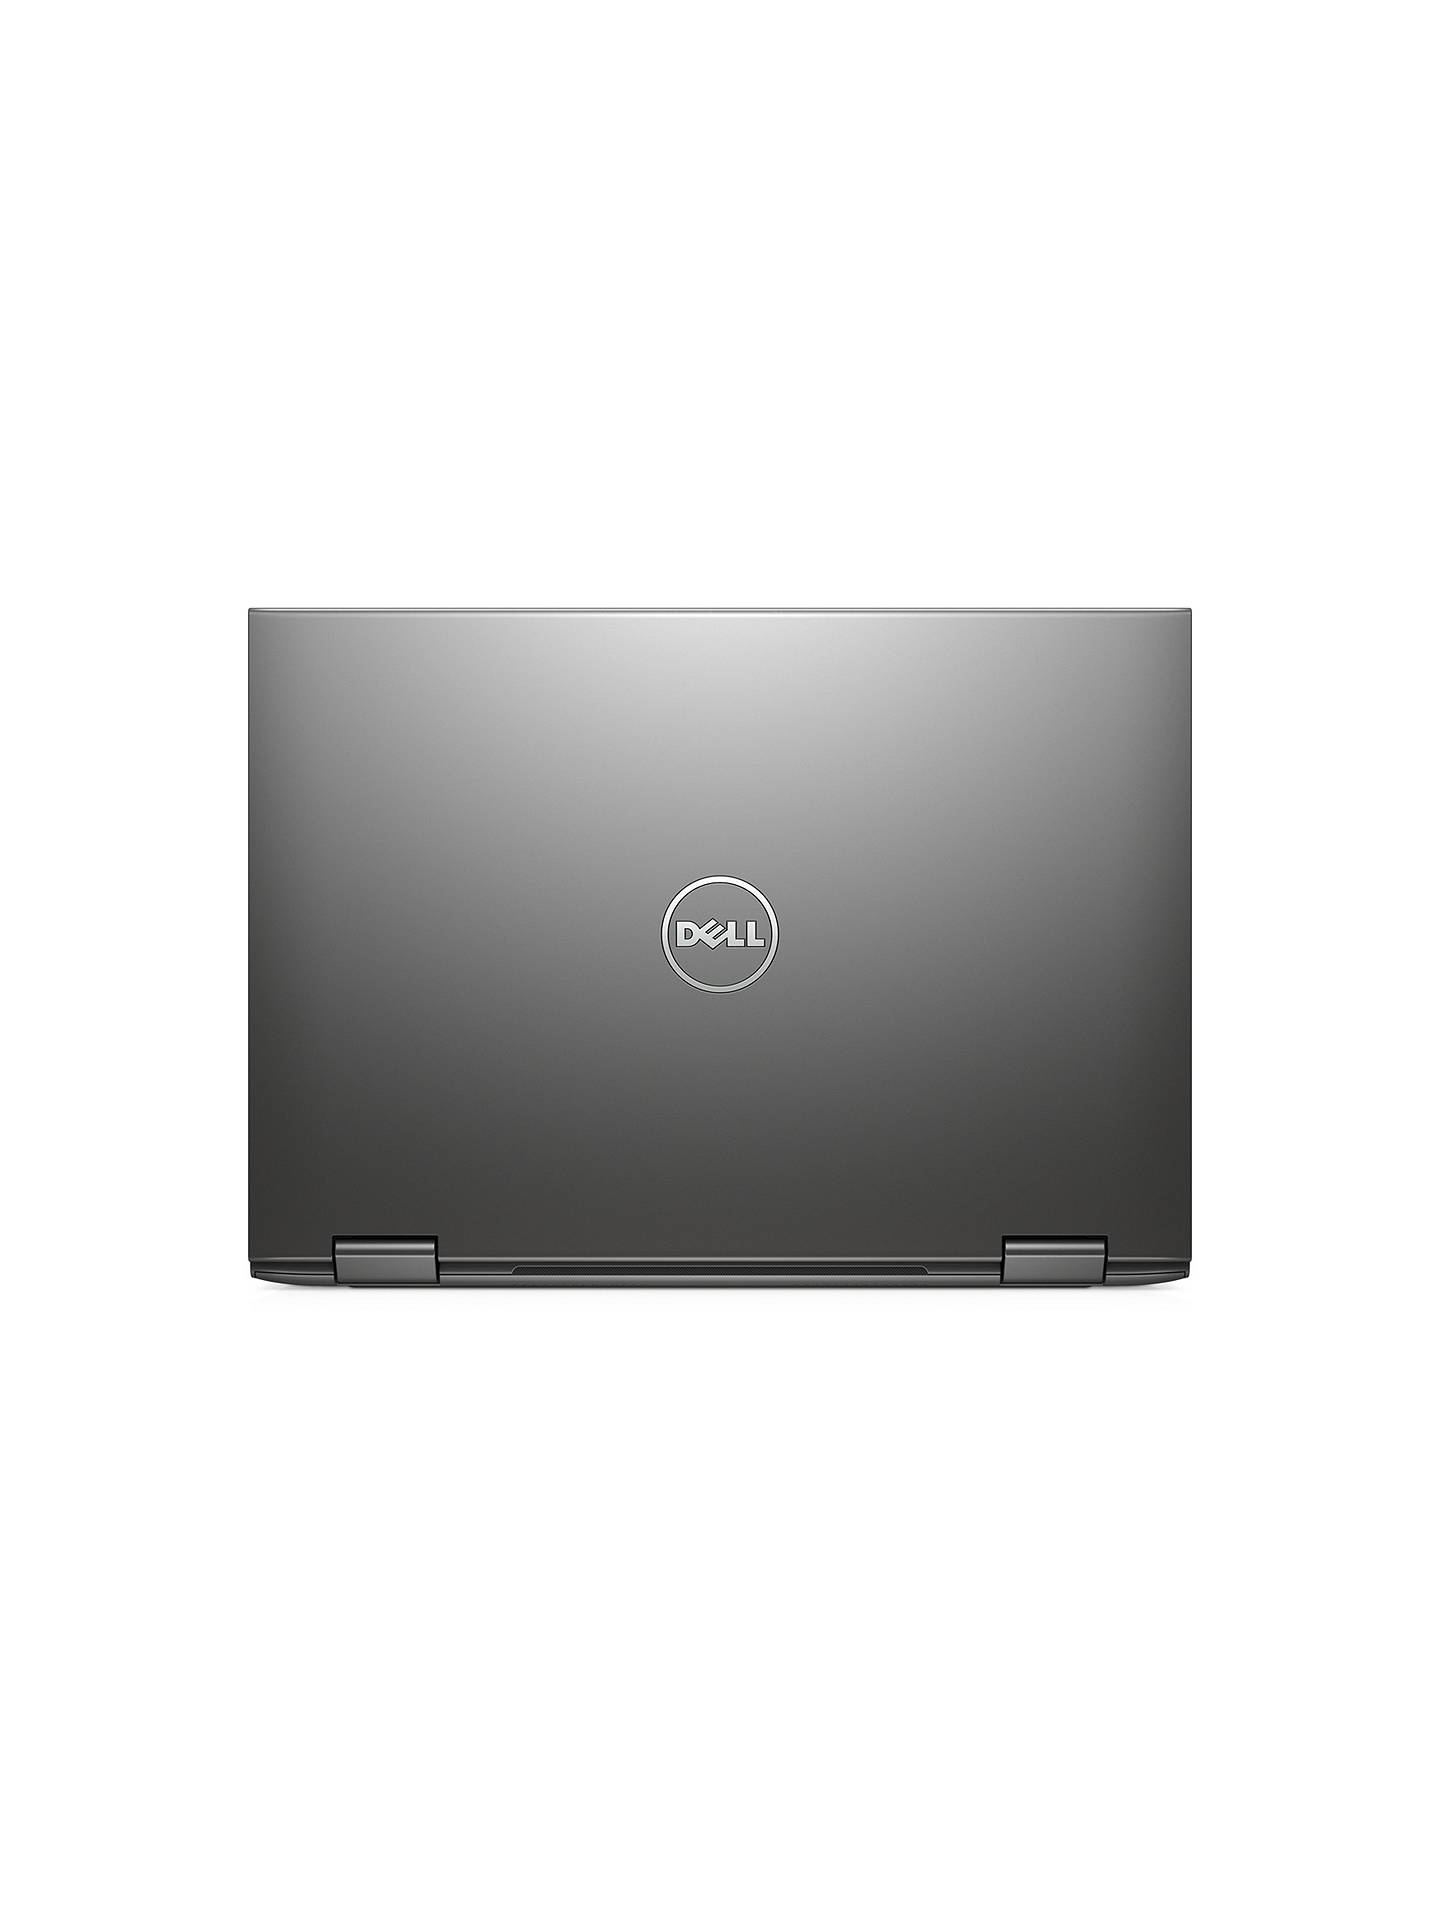 Dell Inspiron 15 5000 Series 2-in-1 Laptop, Intel Core i5